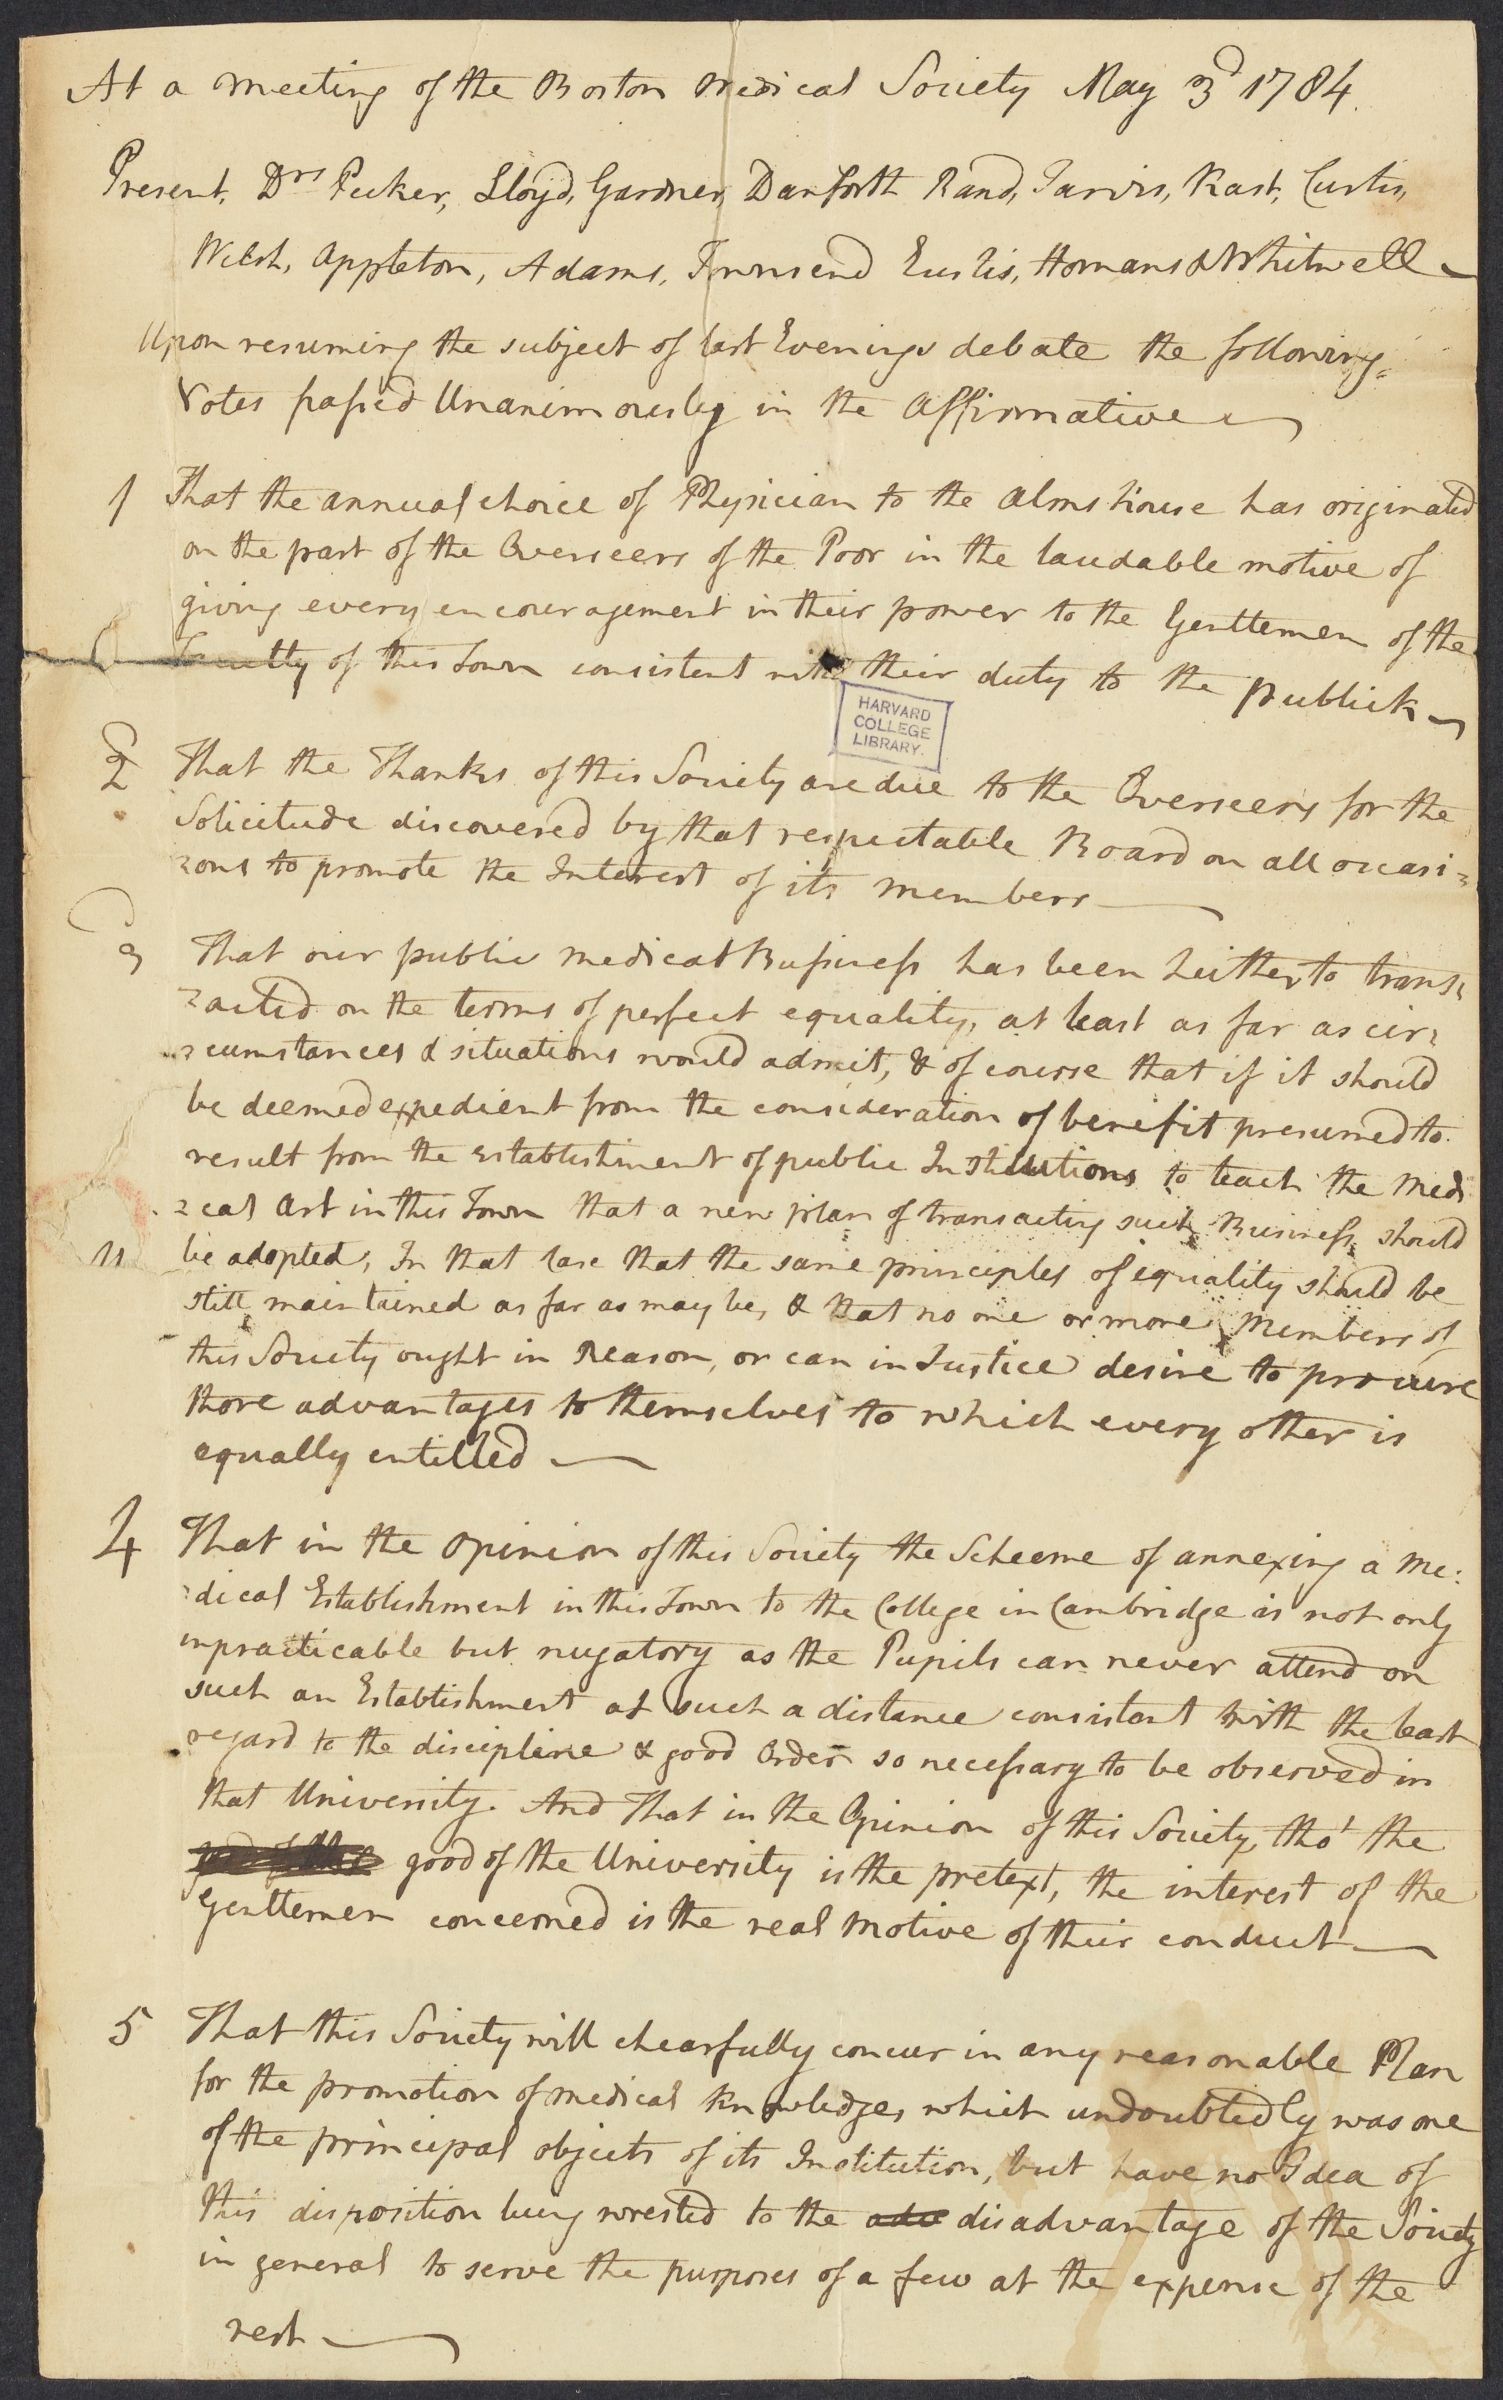 John Warren's copy of votes from a meeting of the Boston Medical Society, 1784 May 3